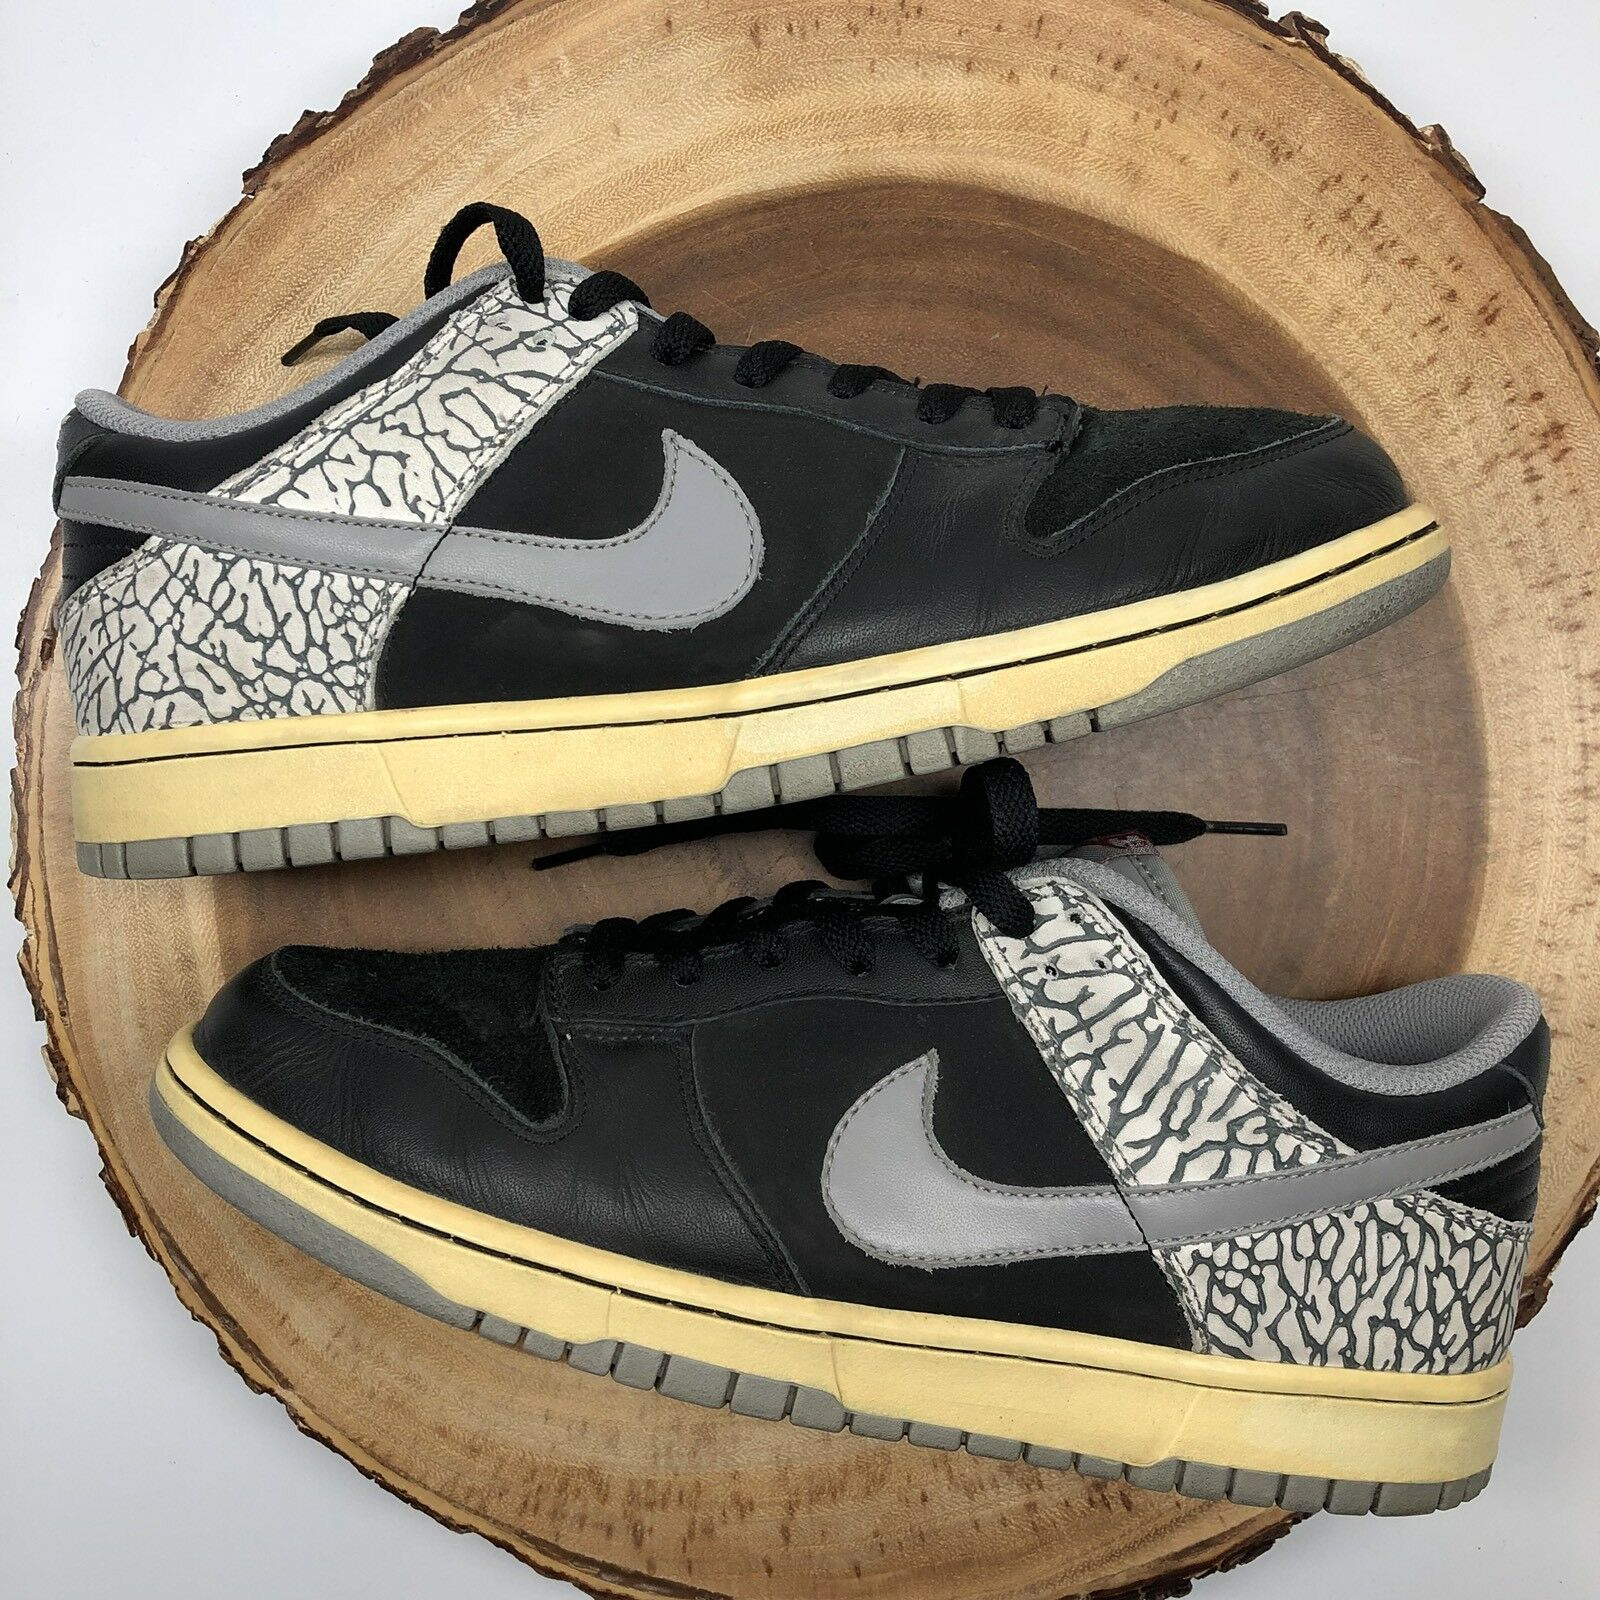 2018 Nike SB DUNK LOW CL AIR JORDAN III 3 BLACK CEMENT GREY 304714-905 Comfortable New shoes for men and women, limited time discount